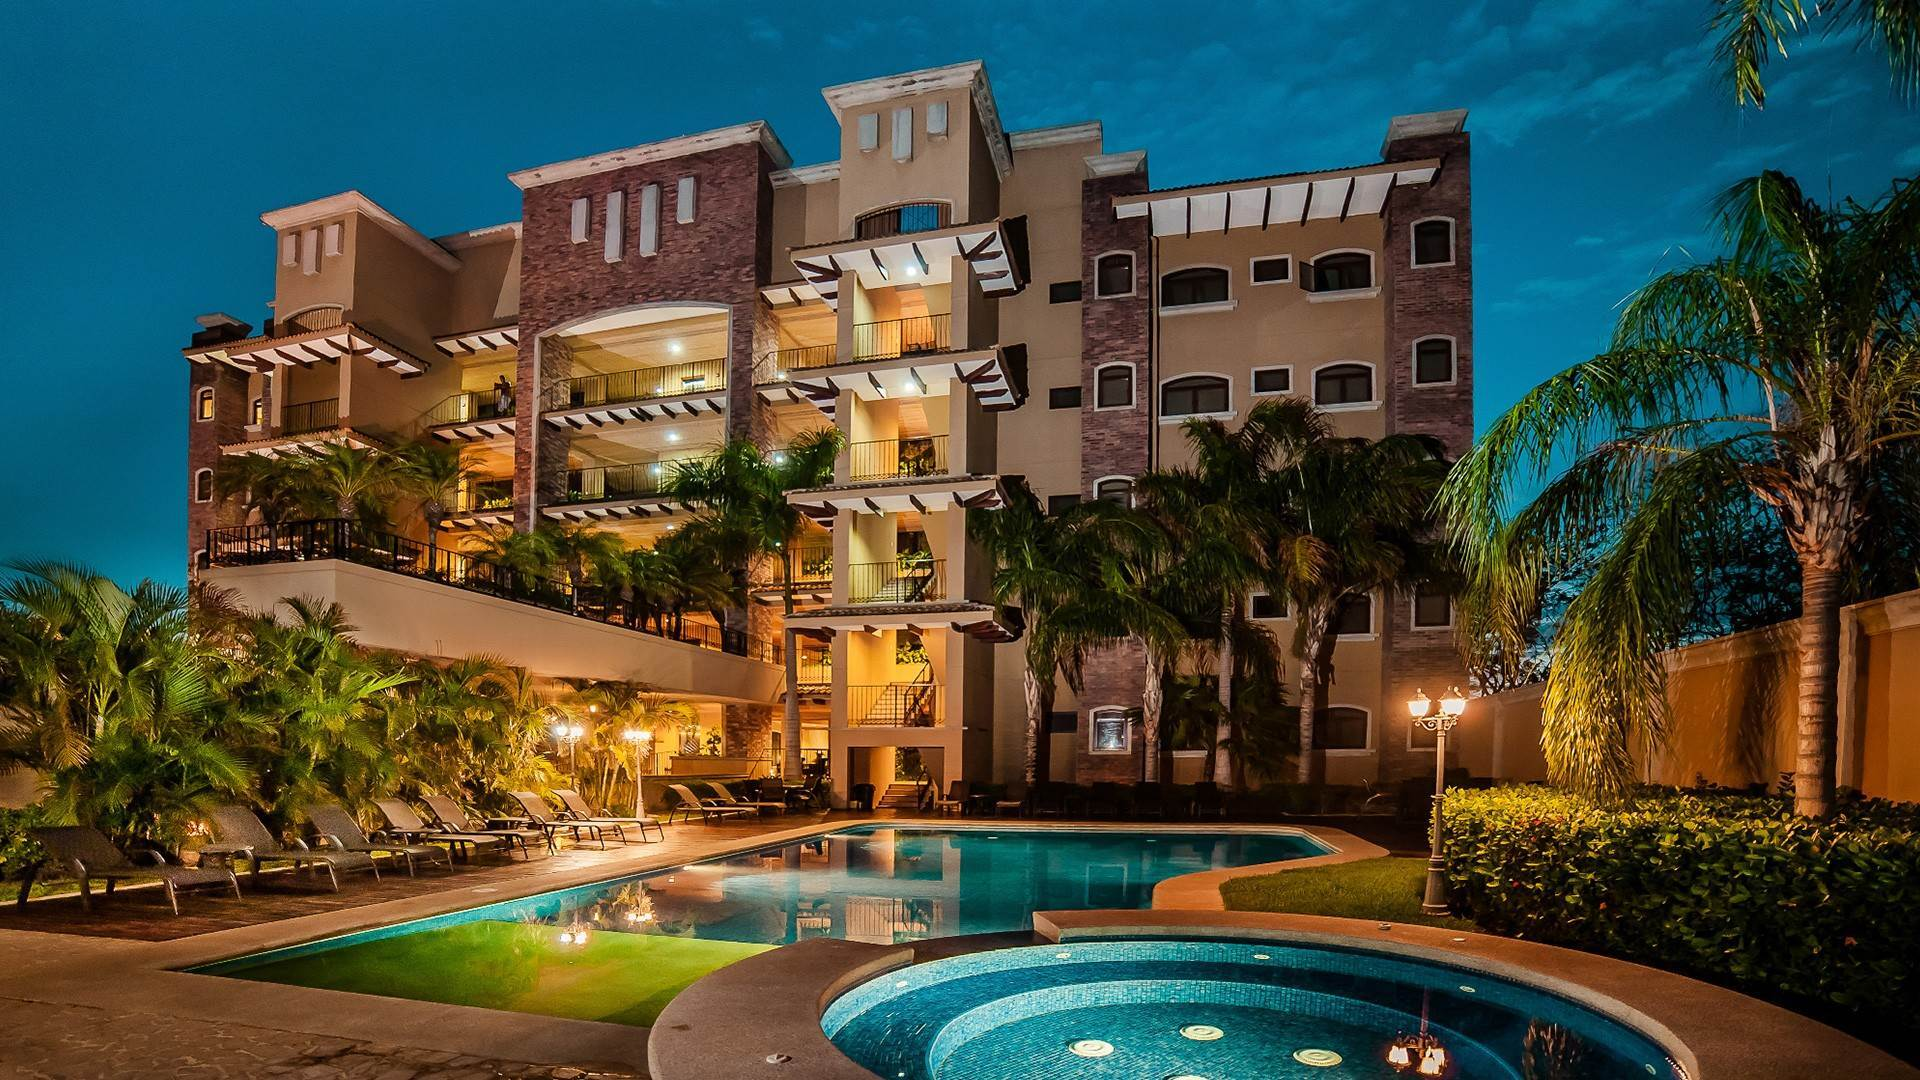 Condominium for Sale at Cristal Sands Tamarindo 203 Santa Cruz, Guanacaste,50309 Costa Rica